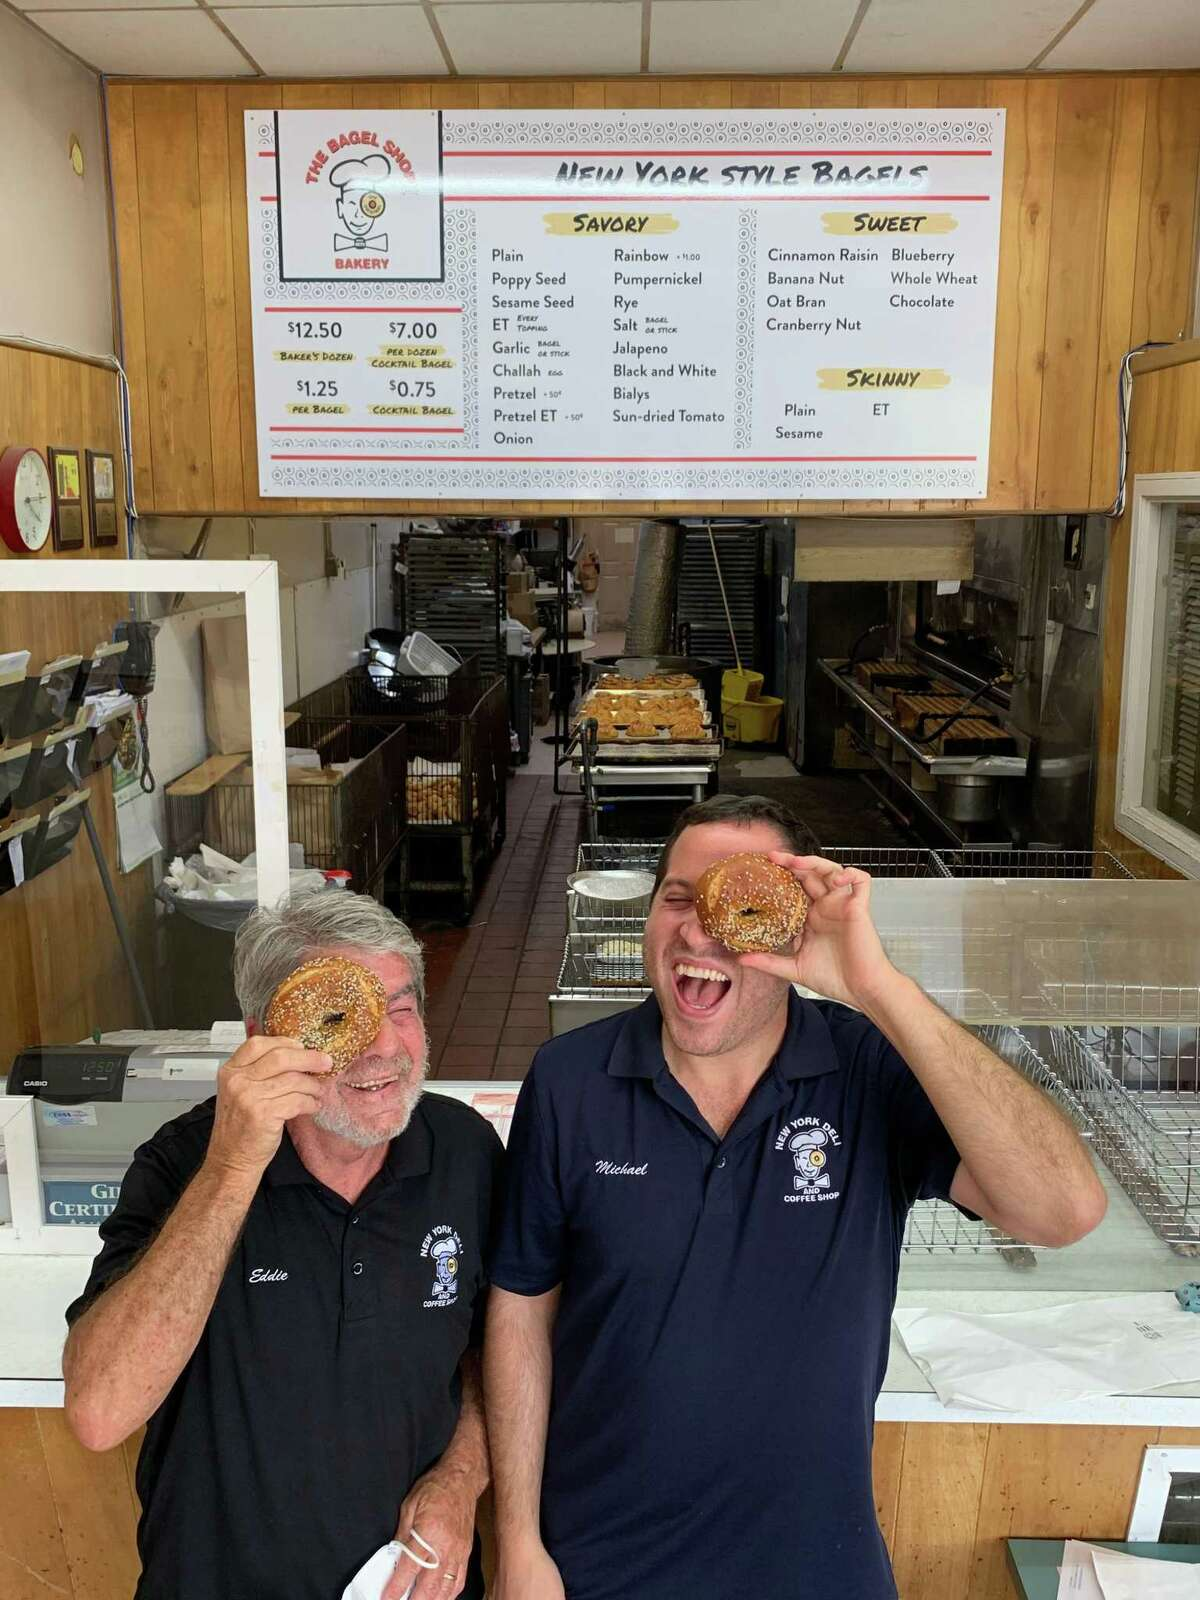 Bagel Shop Bakery owners Ed Gavrila (left) and Michael Saghian (right) are expanding to a second location 45 years after the original location on Hillcroft Street, which is still open, opened